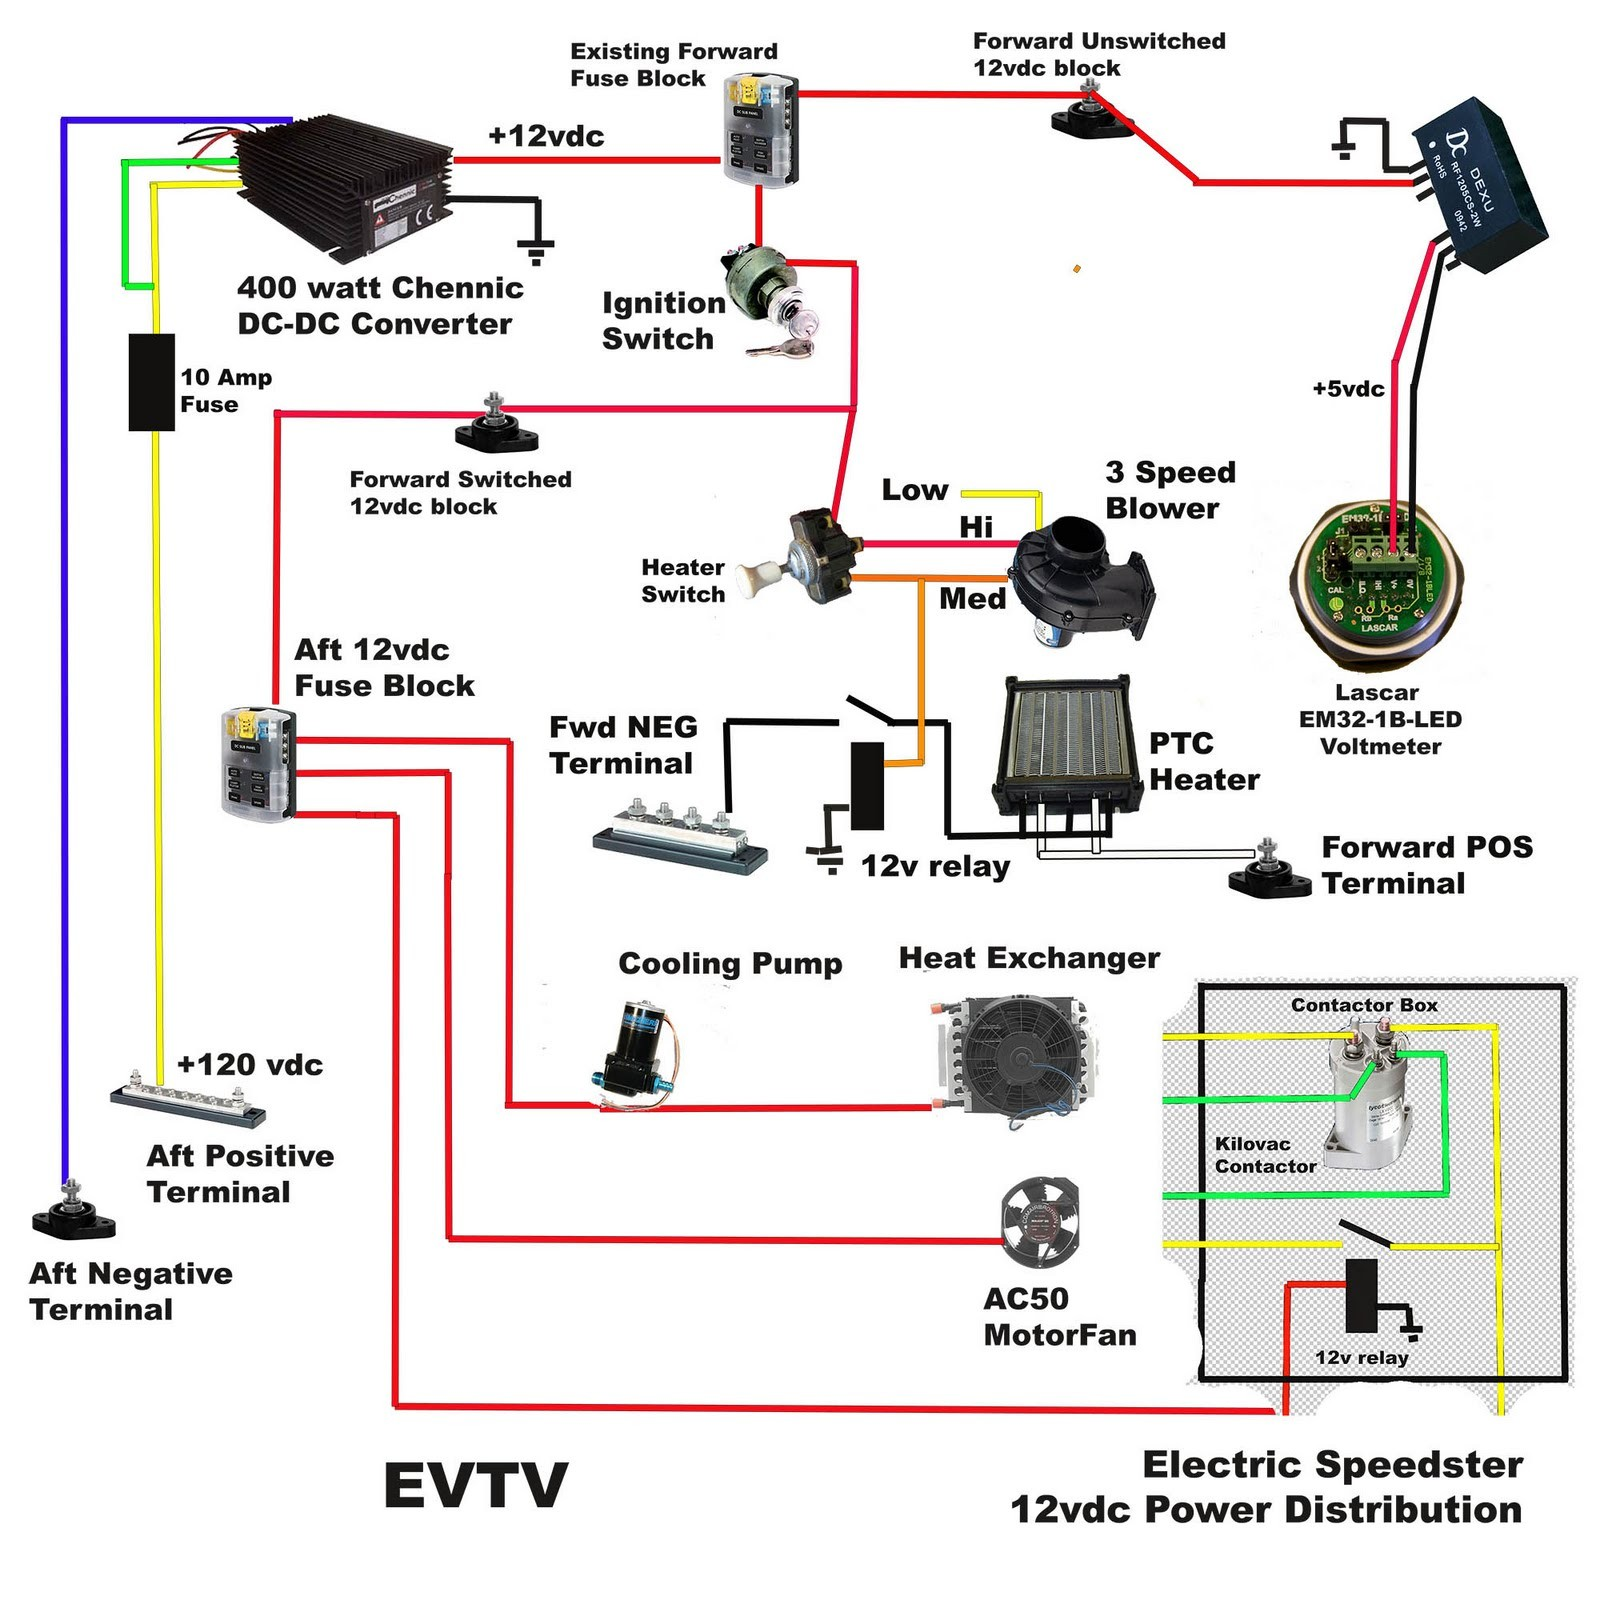 Car Ac System Diagram Awesome Car Air Conditioning System Wiring Diagram Contemporary Of Car Ac System Diagram